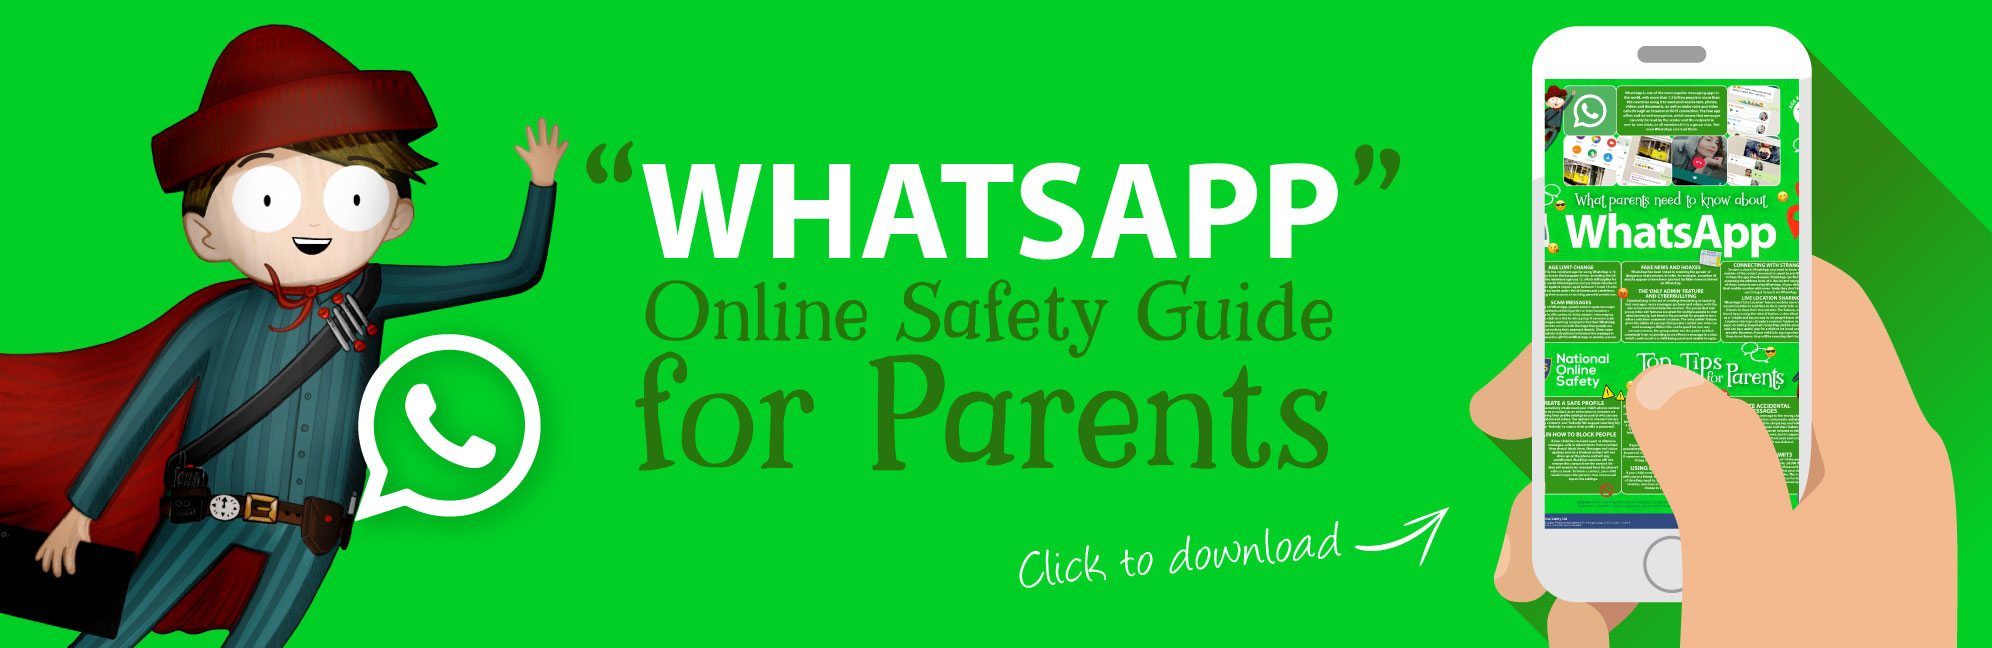 Whatsapp-Online-Safety-Parents-Guide-Web-Image-121118-V1